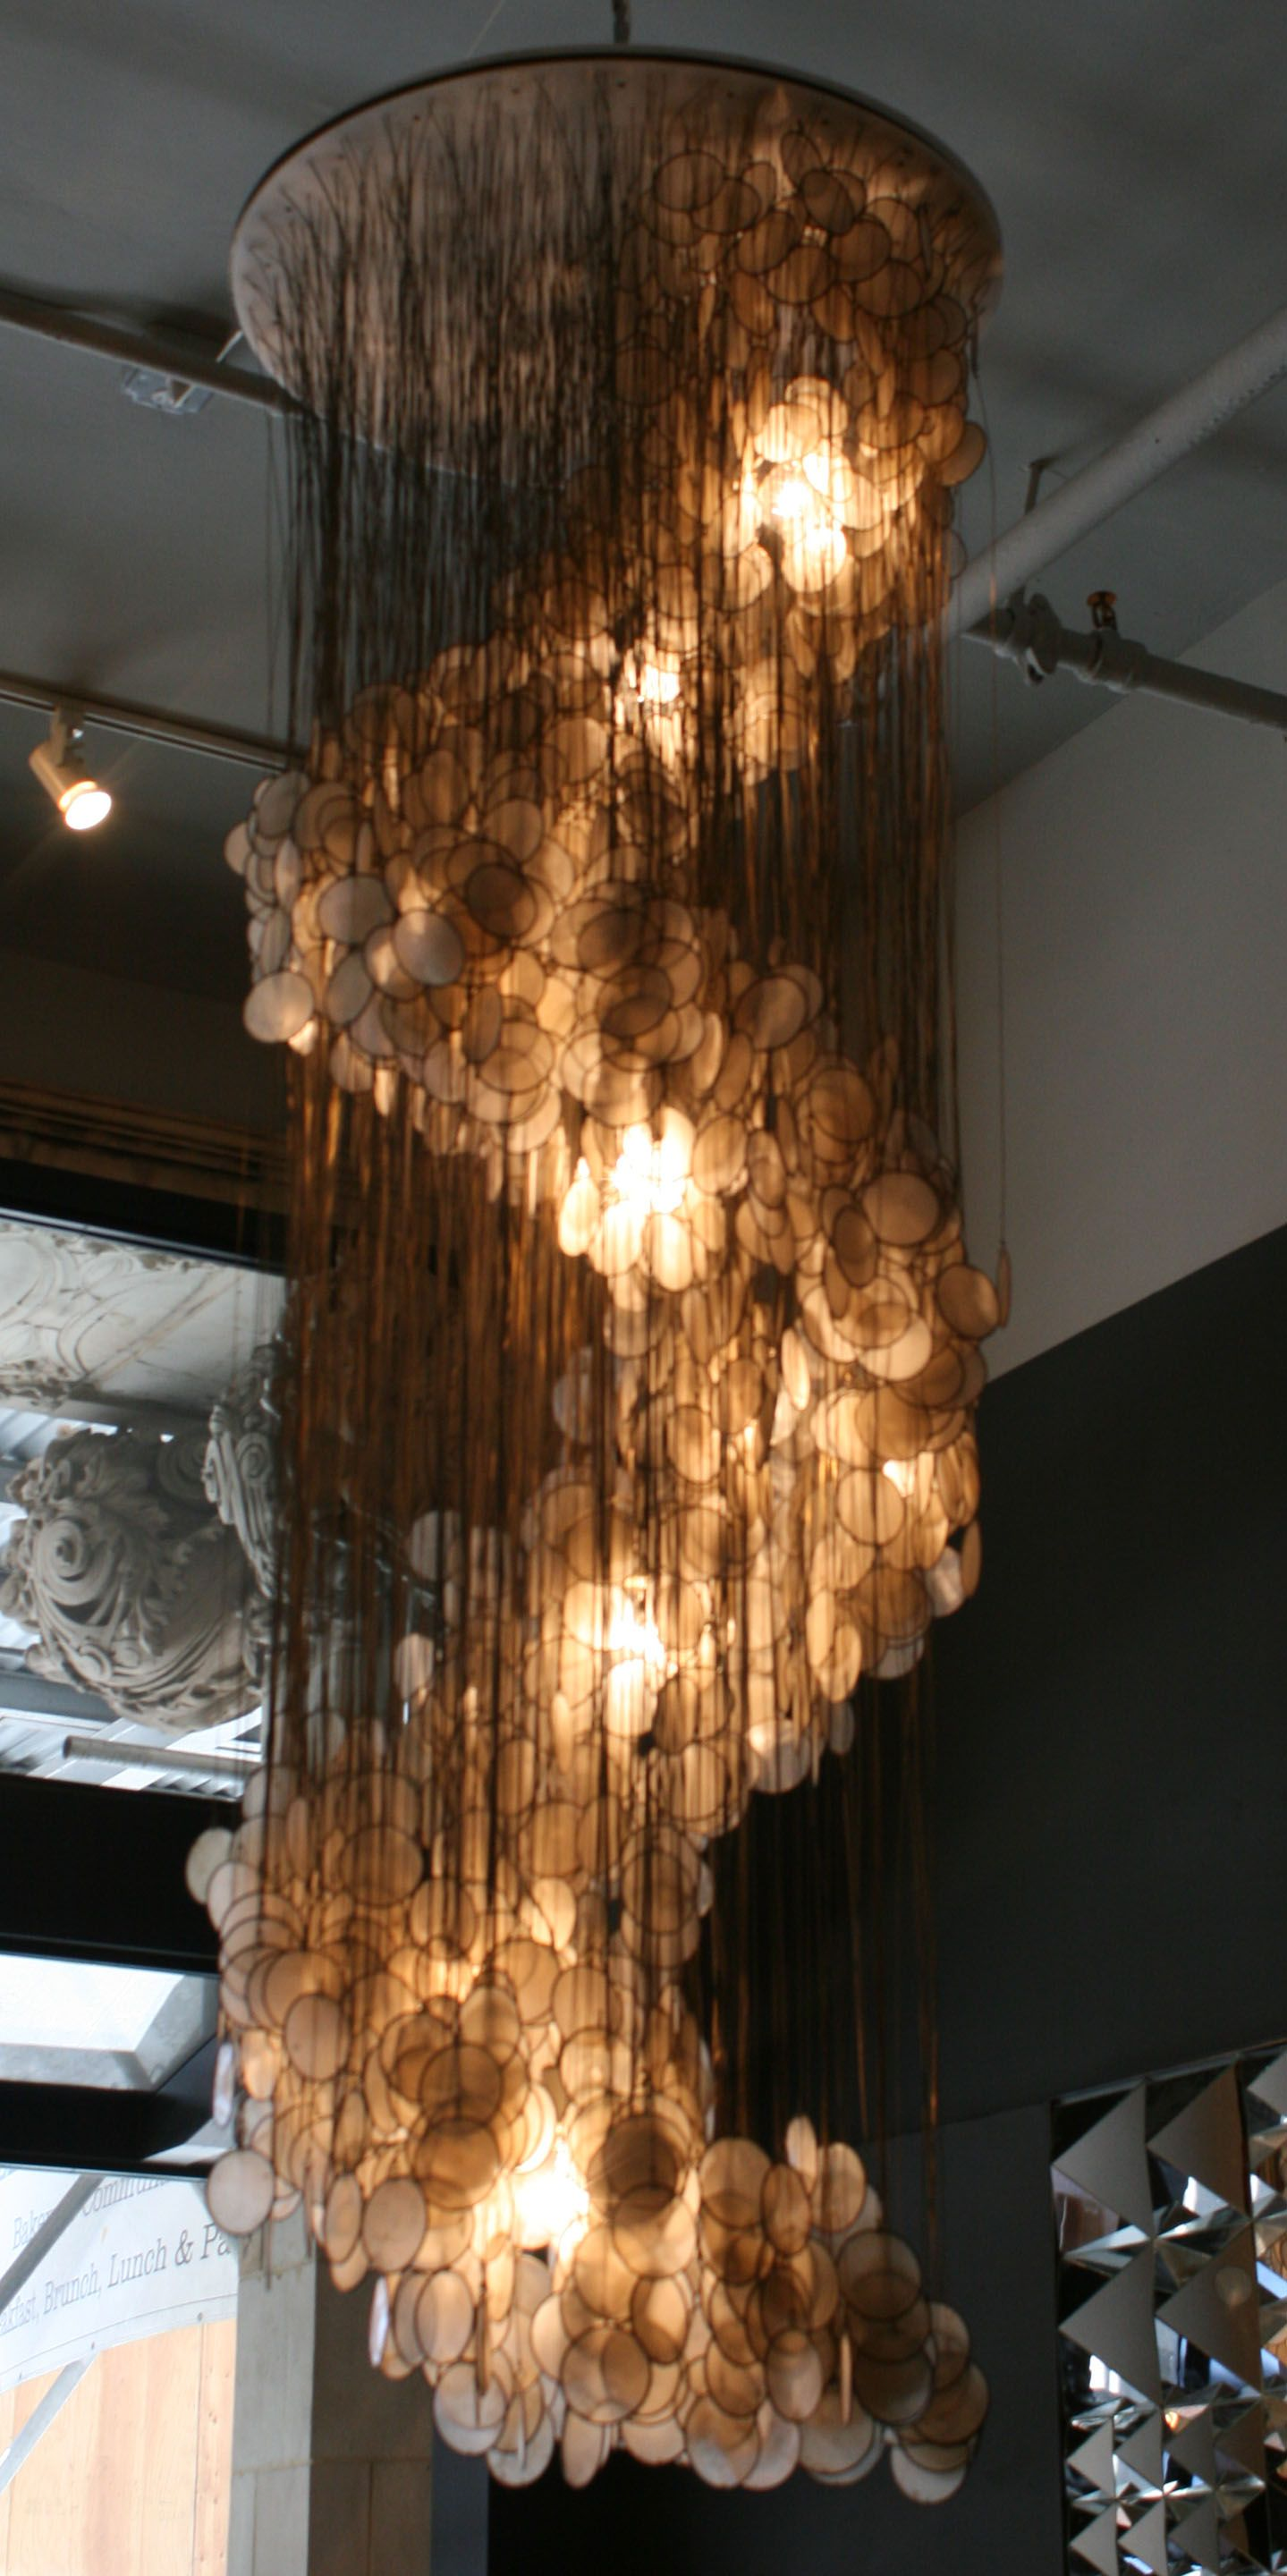 spiral oyster shell chandeliers Google Search